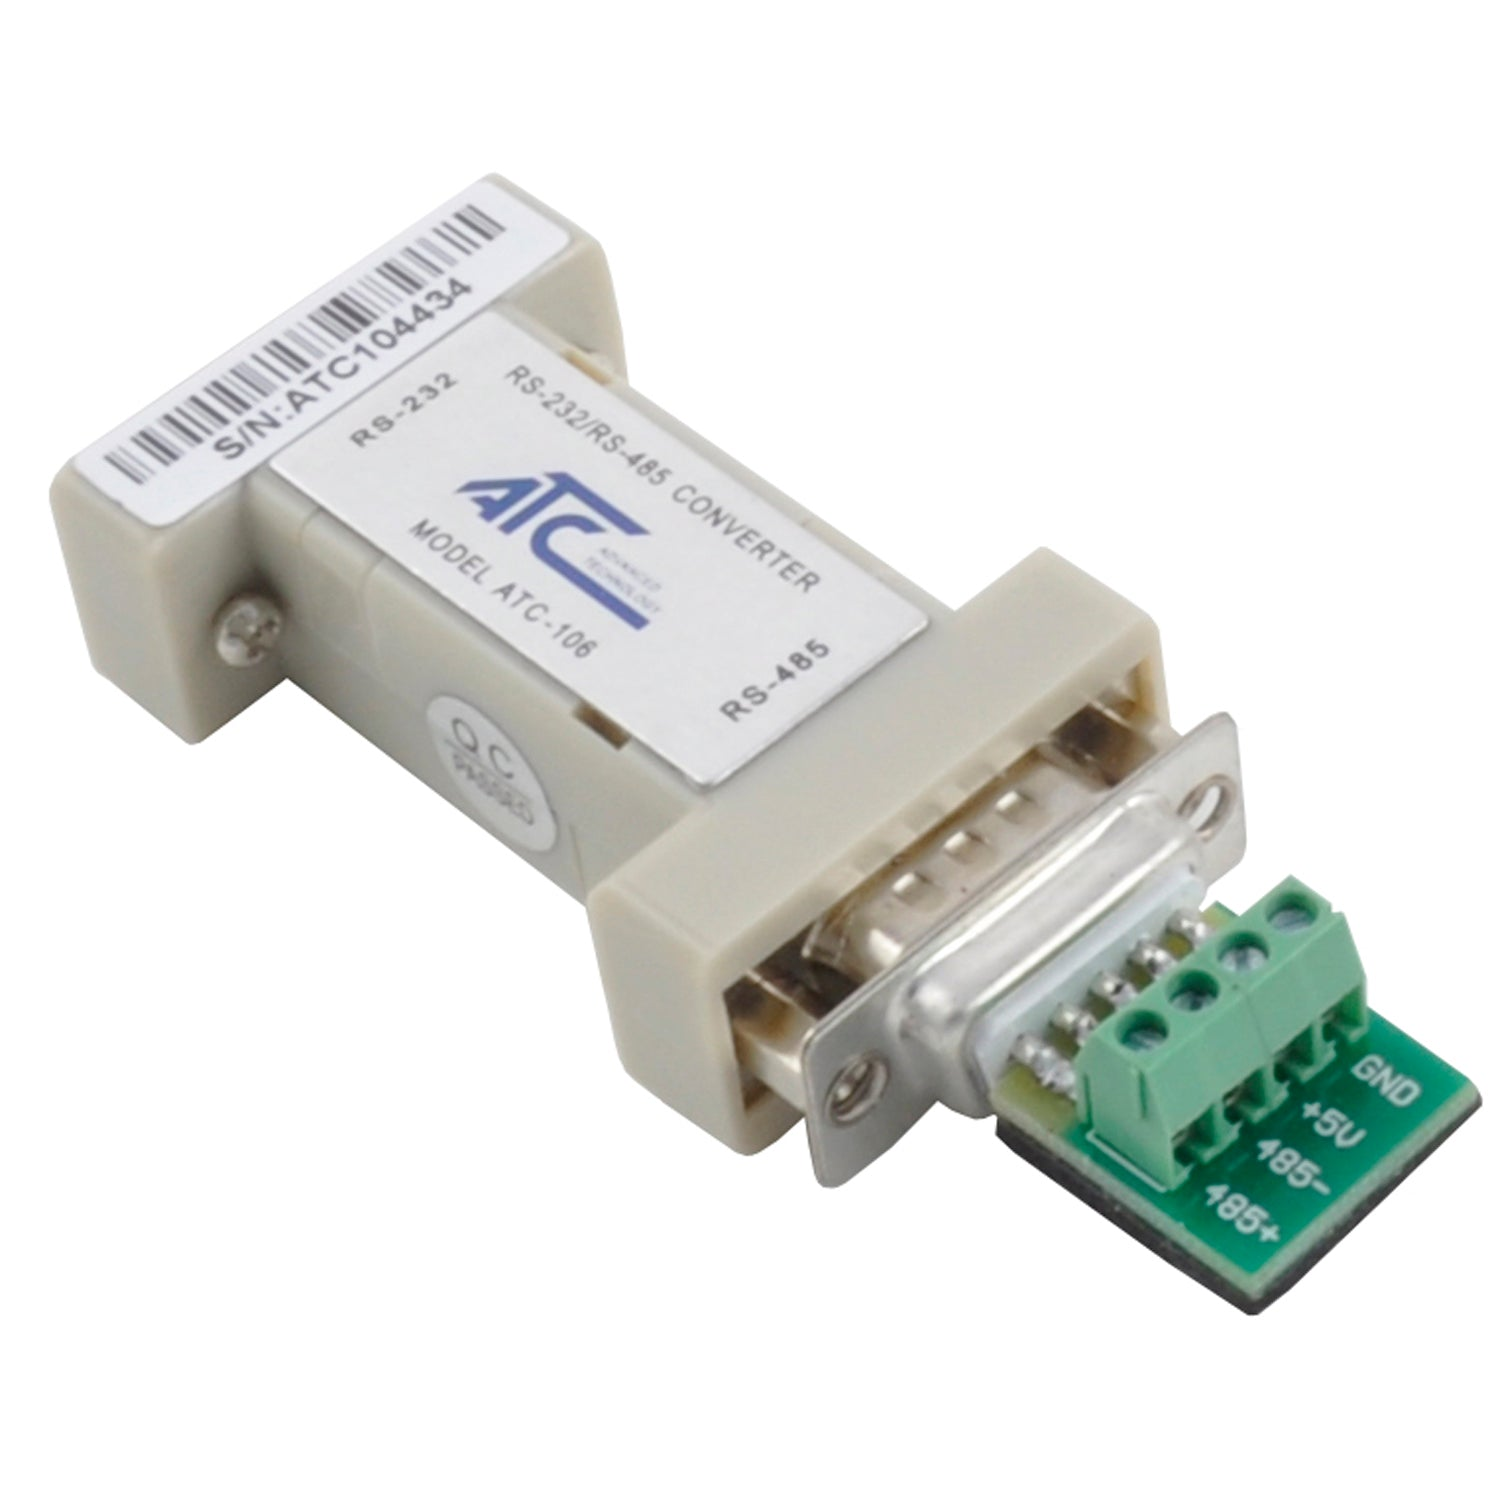 Atc 106 Rs232 To Rs485 Db9 Converter Non Isolated Grid Connect Usb Serial Adapter Schematic Circuit Hd Walls Find 1495